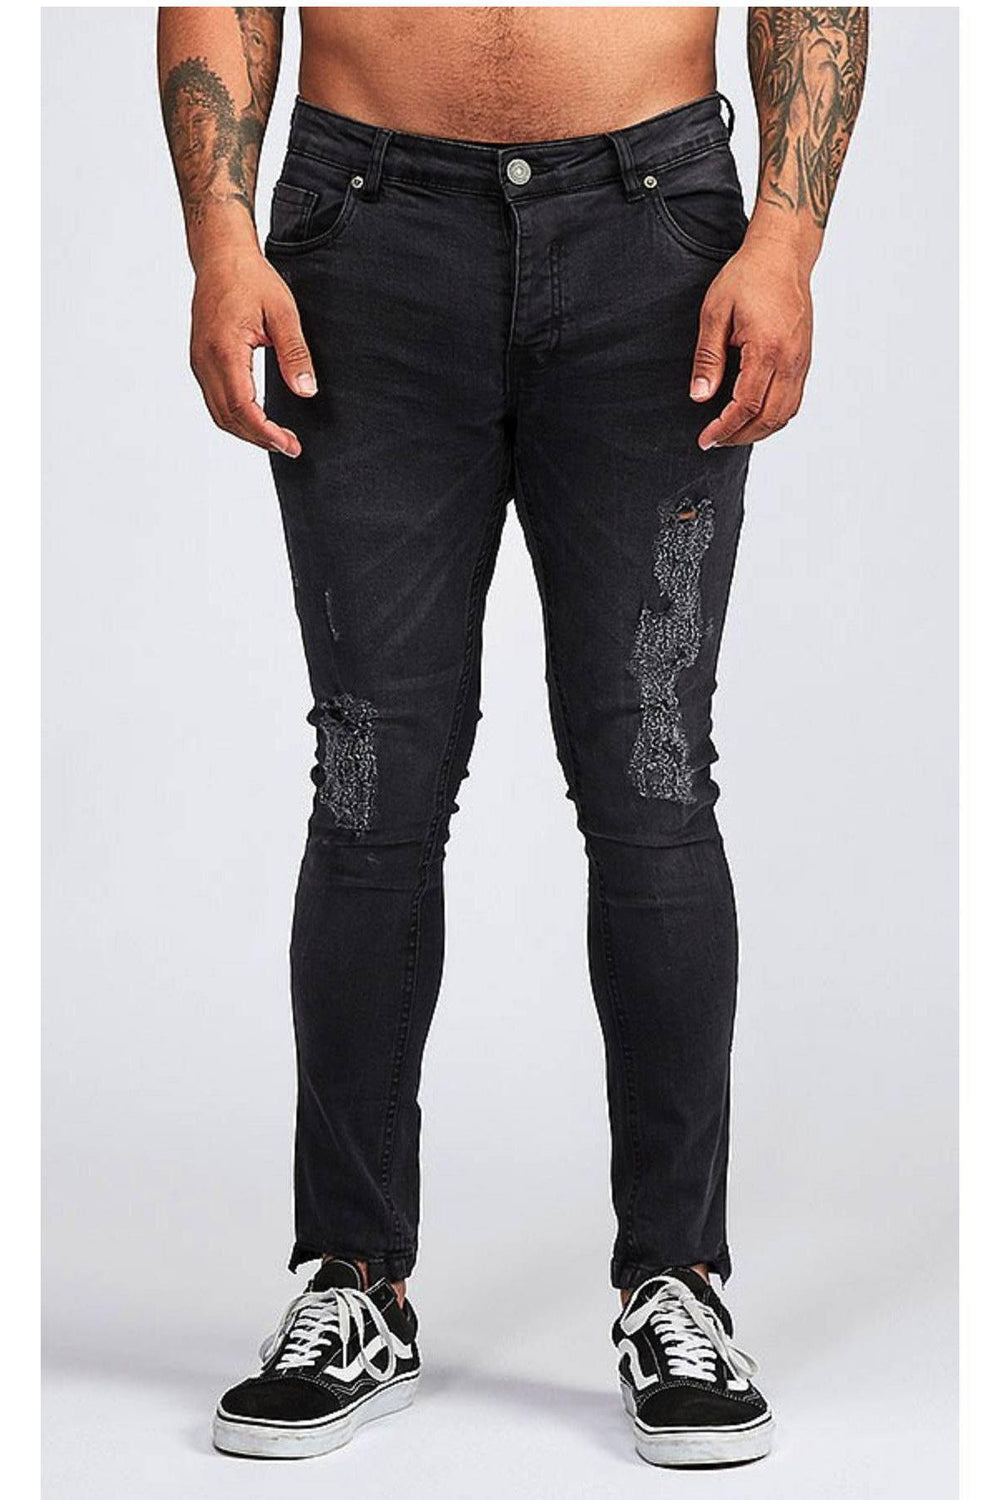 Jeans - Skinny Washed Ripped Jeans Dk Charcoal